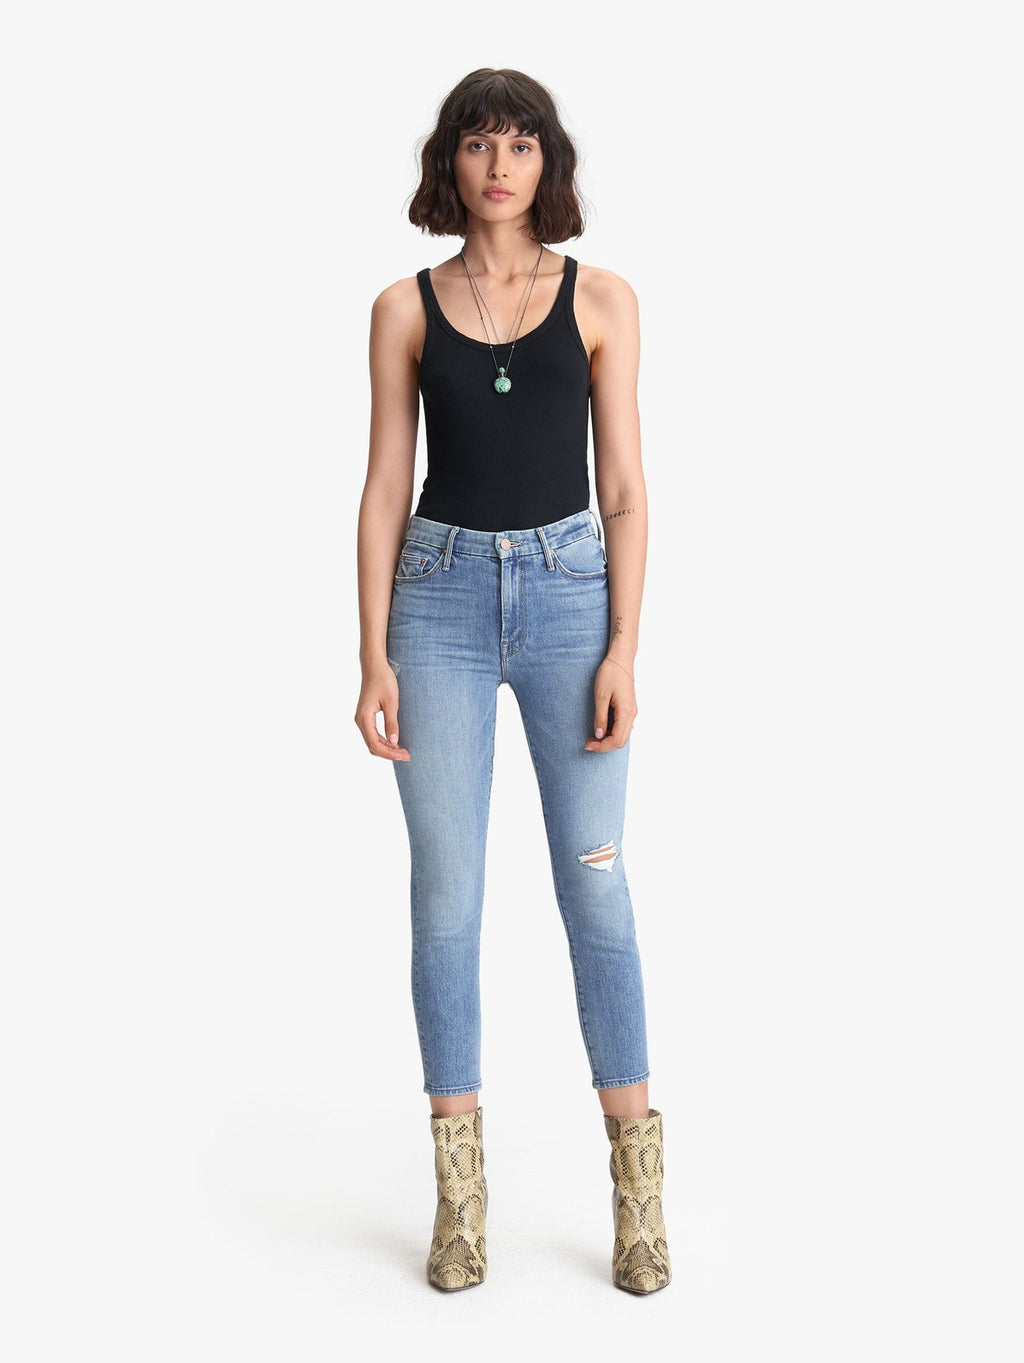 The High Waisted Looker Crop - Let's Kick It